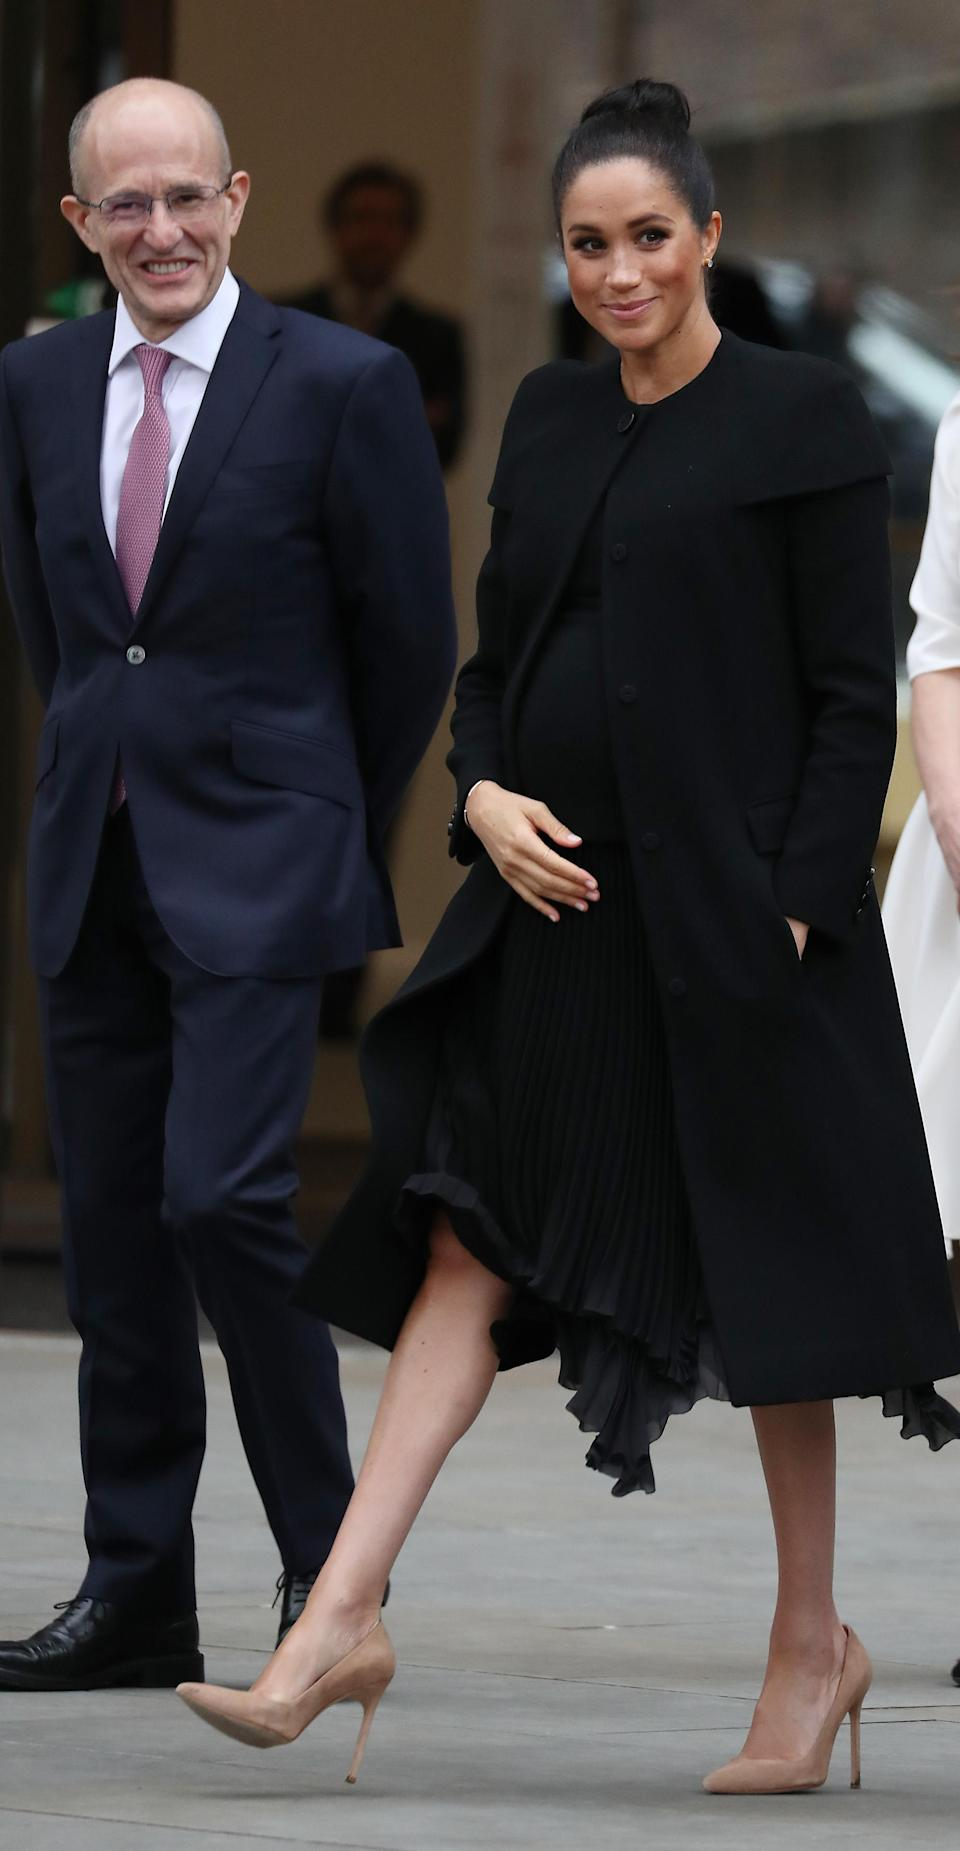 The Duchess of Sussex swapped her trademark messy bun for a slick updo during a trip to the Association of Commonwealth Universities at City, University Of London. She wore a minimal ensemble which included a chic Givenchy coat and matching pleated dress. [Photo: Getty]